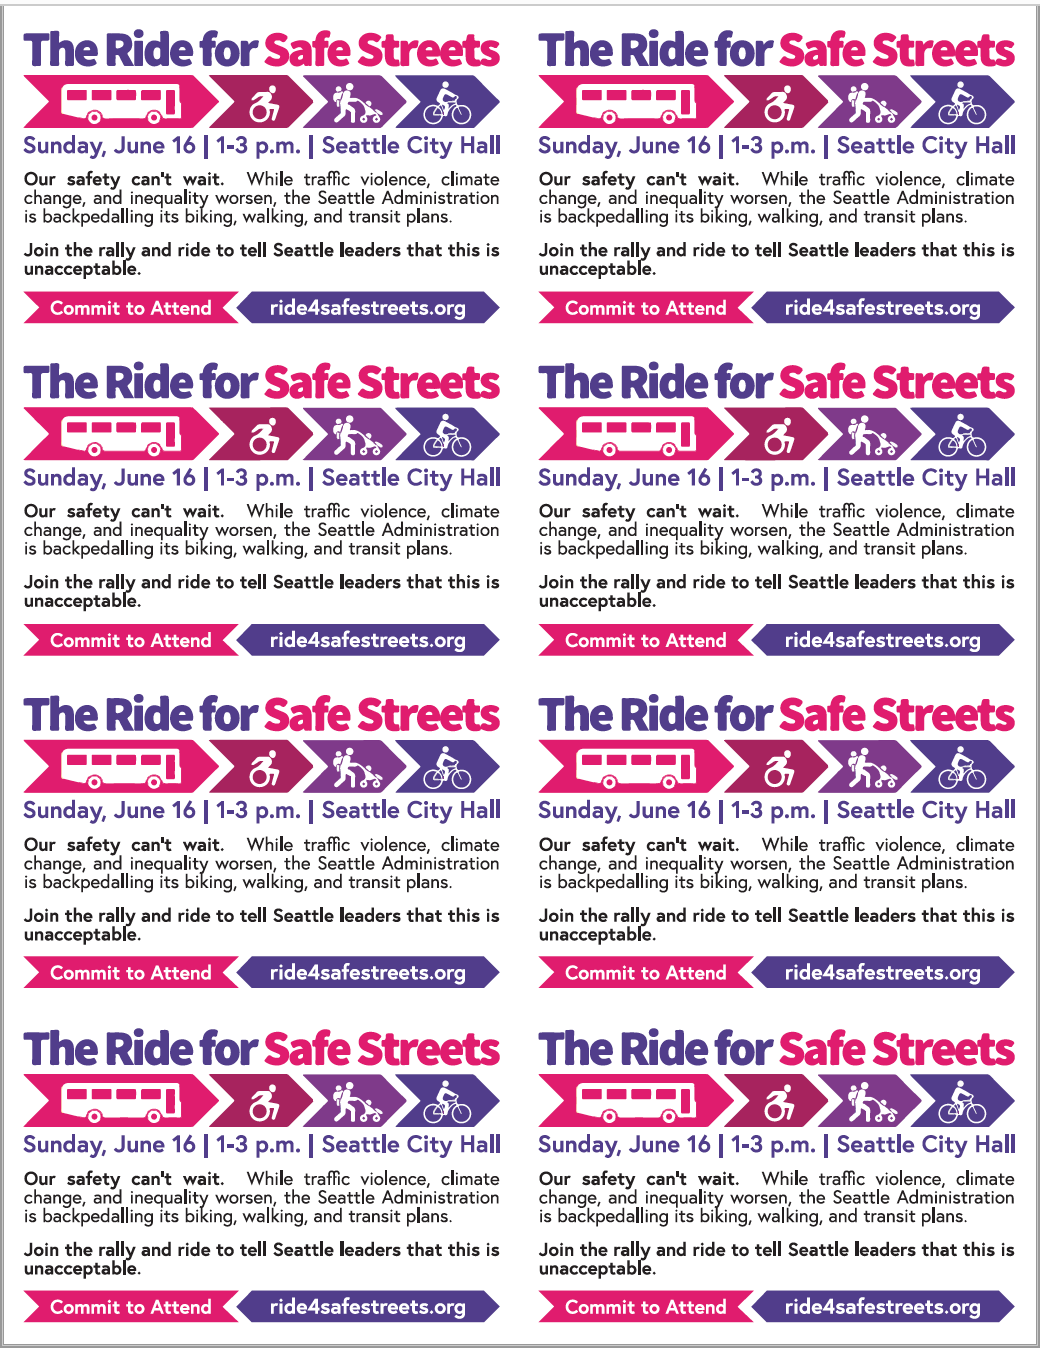 Fliers - Print fliers for handing out at events and to commuters along well-known bike routes.